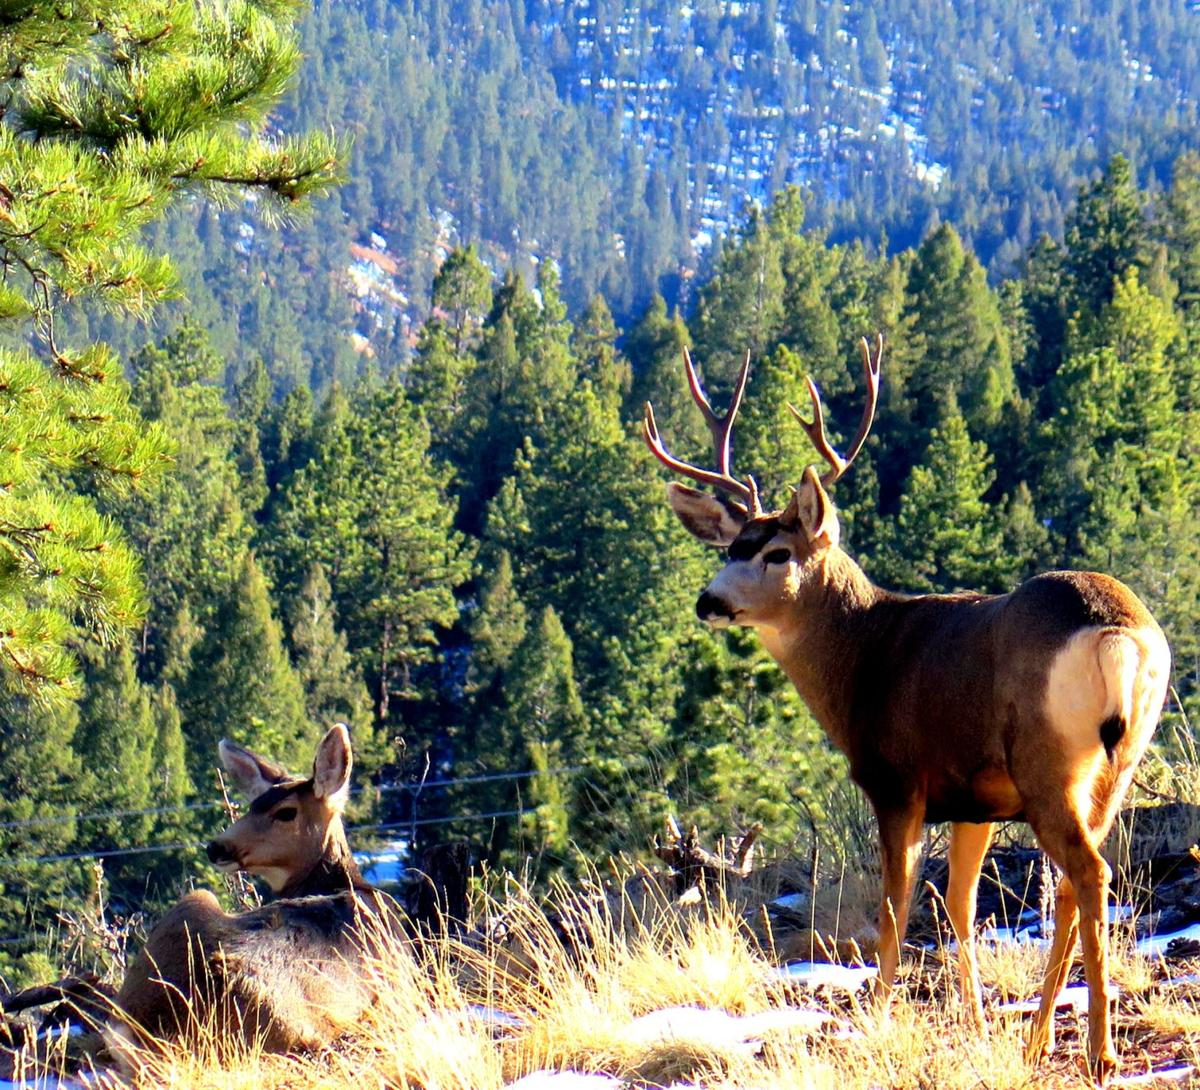 Snapshots: The breathtaking natural flora and fauna of Teller County